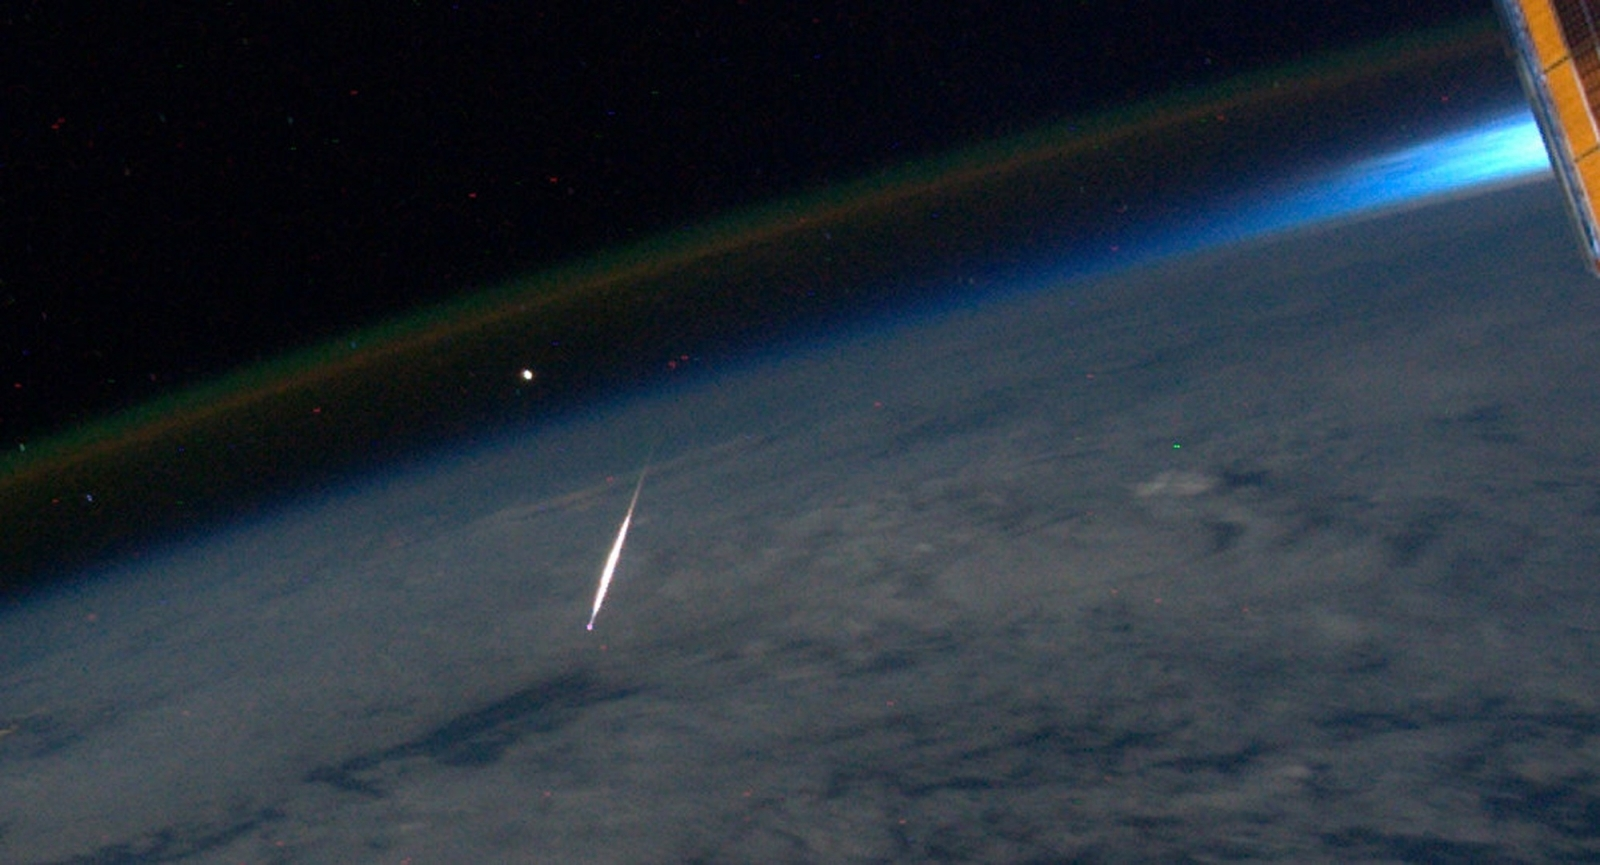 Shooting star from space station